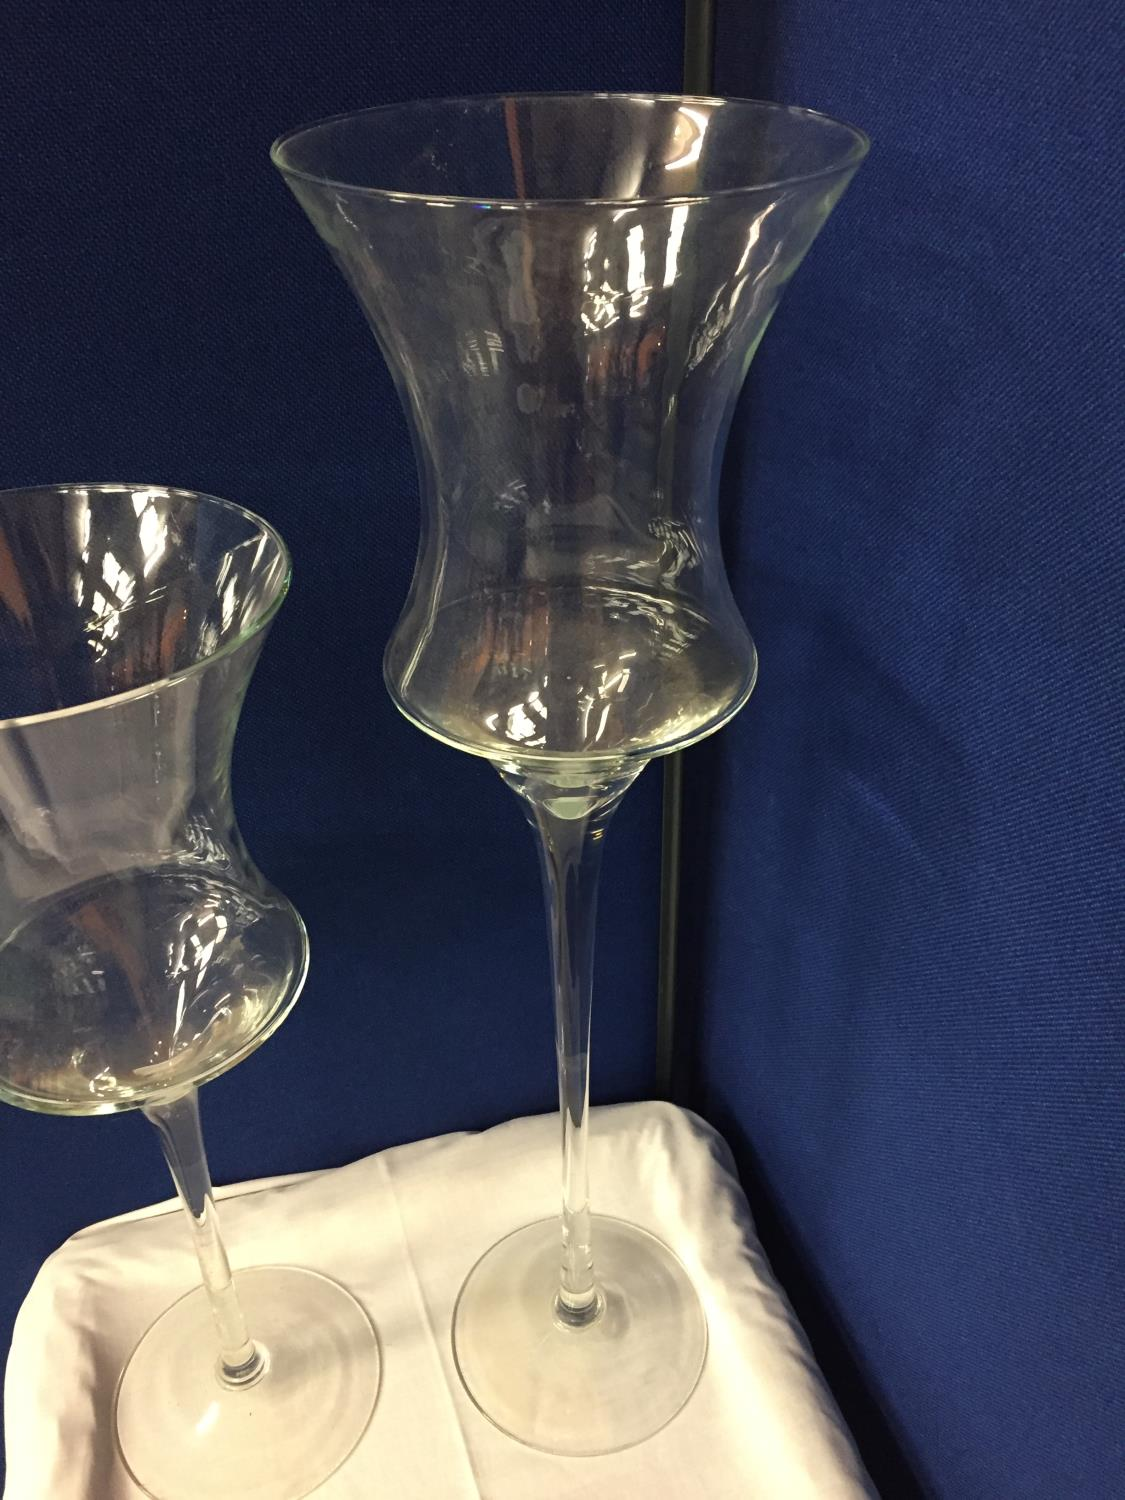 THREE LARGE GLASS CANDLE HOLDERS APPROXIMATE HEIGHTS 70CM 55CM 40CM - Image 4 of 4